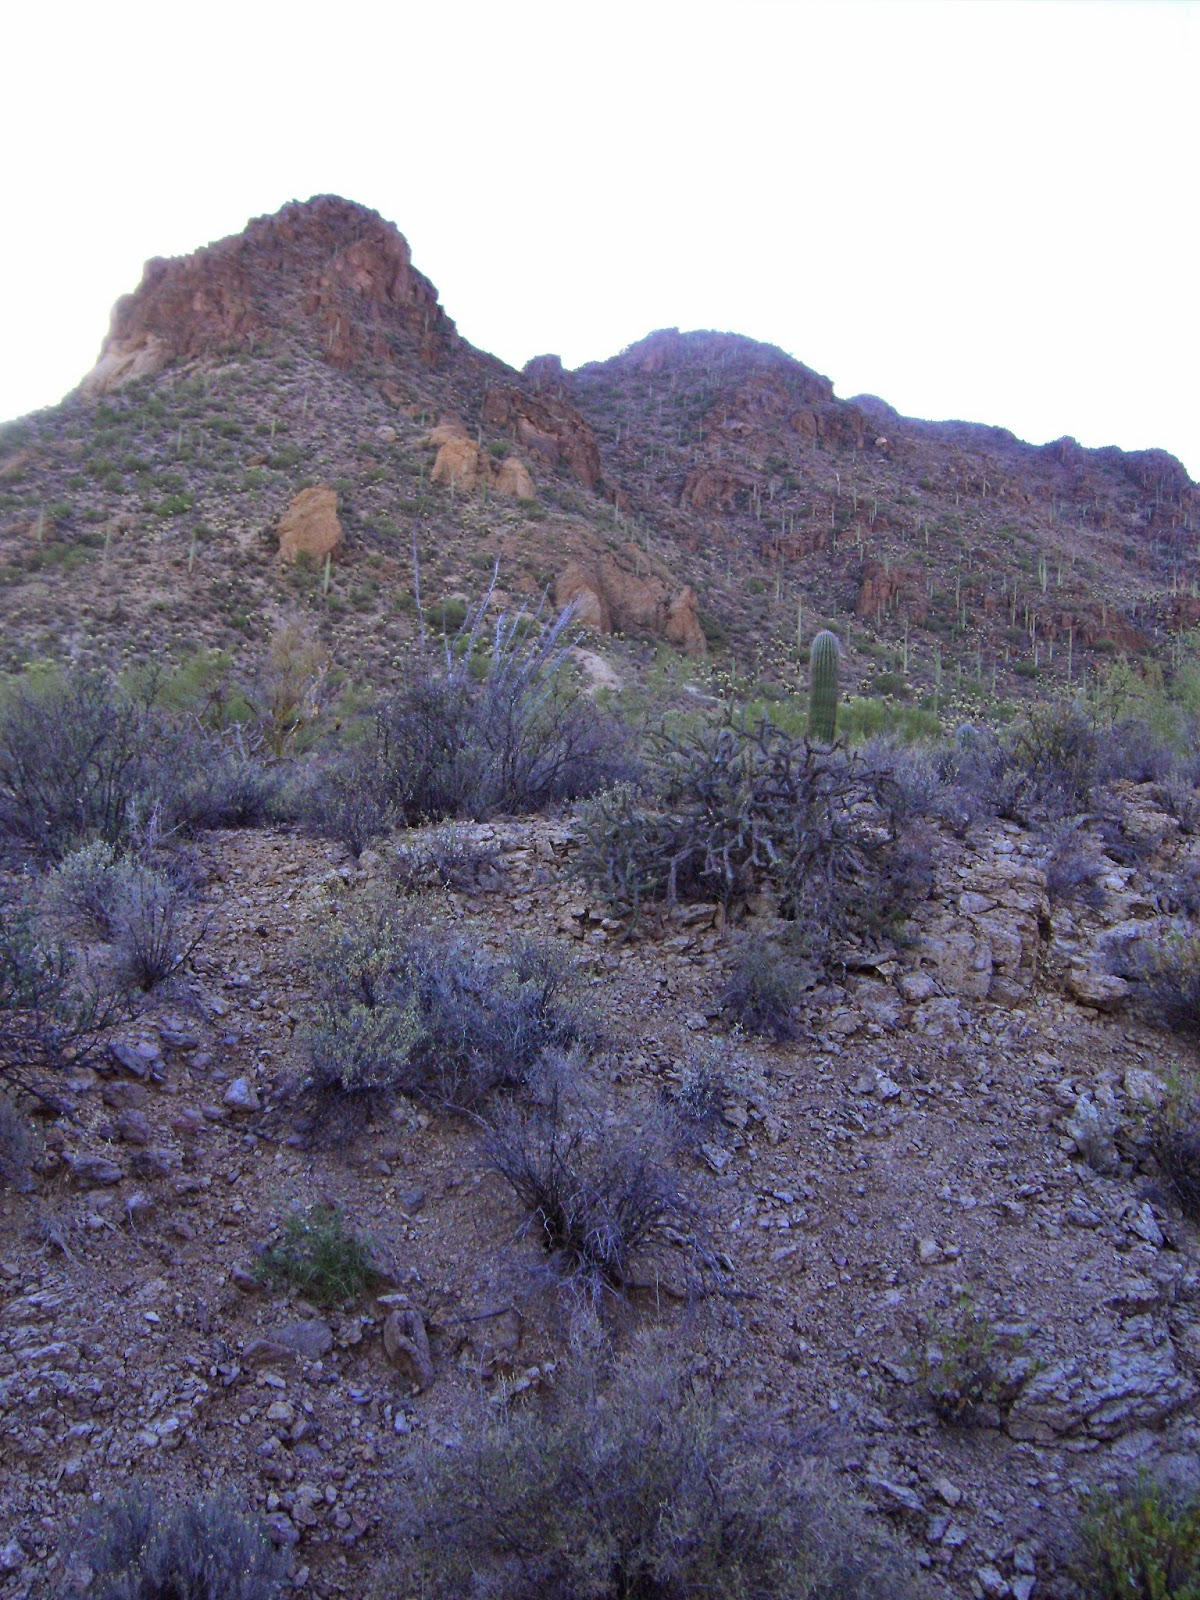 hiking up a steep trail in tucson mountain park